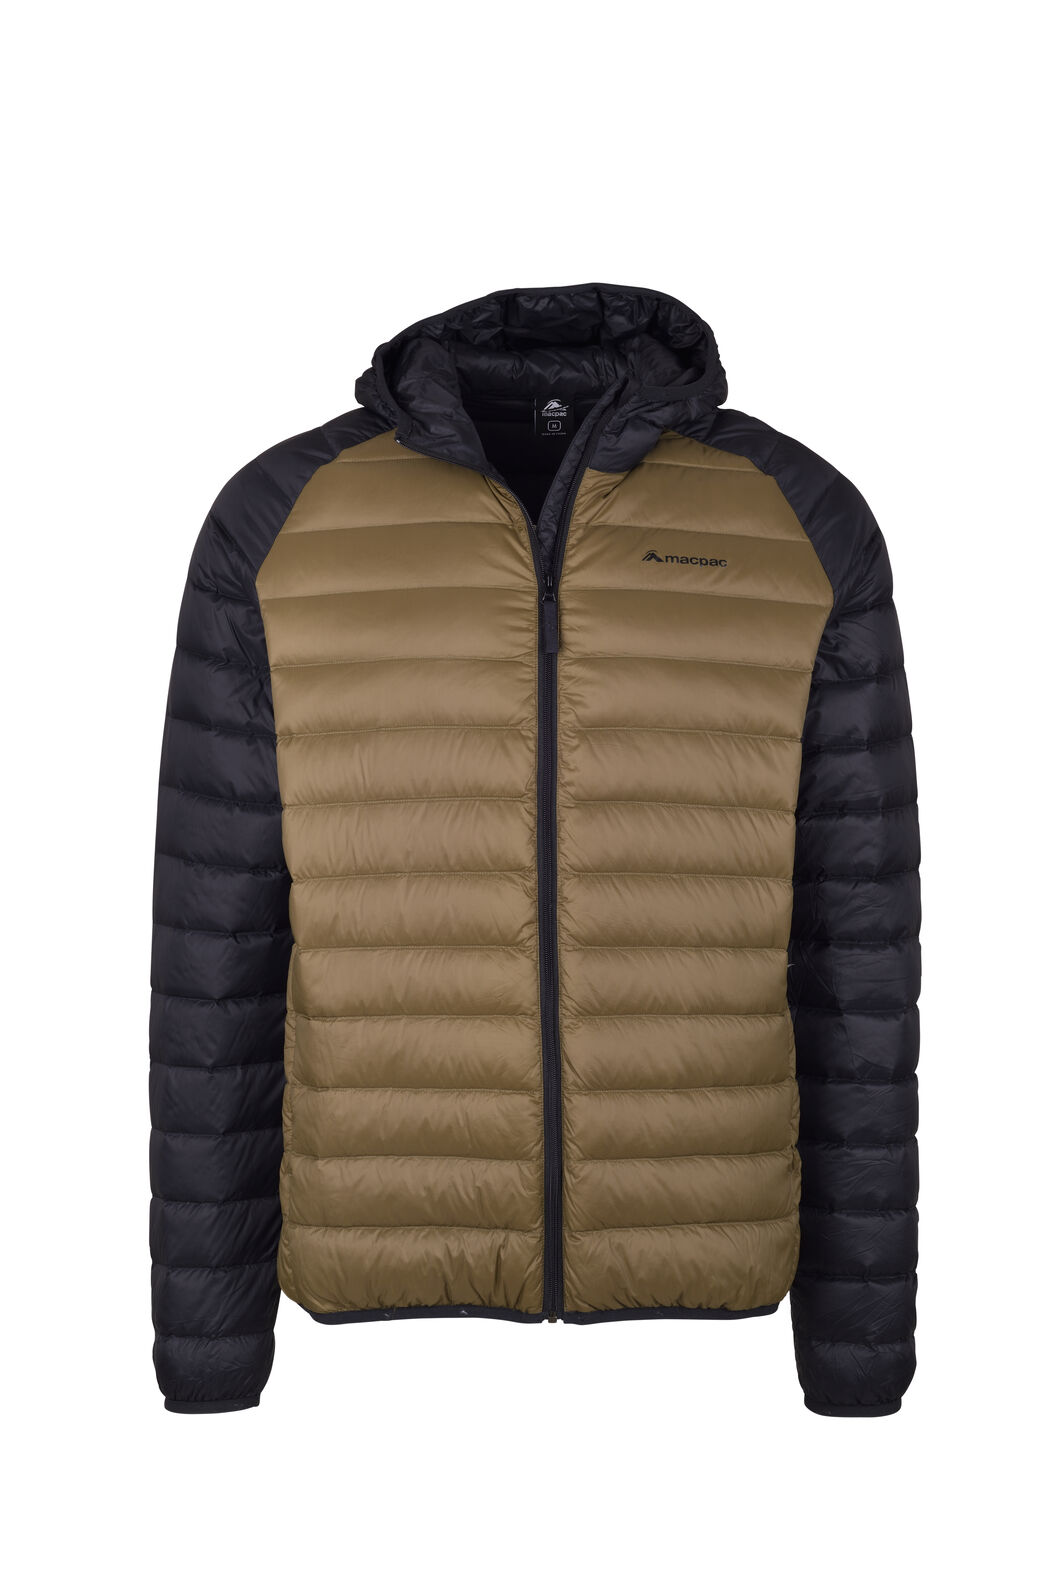 Macpac Uber Hooded Down Jacket - Men's, Beech/Black, hi-res